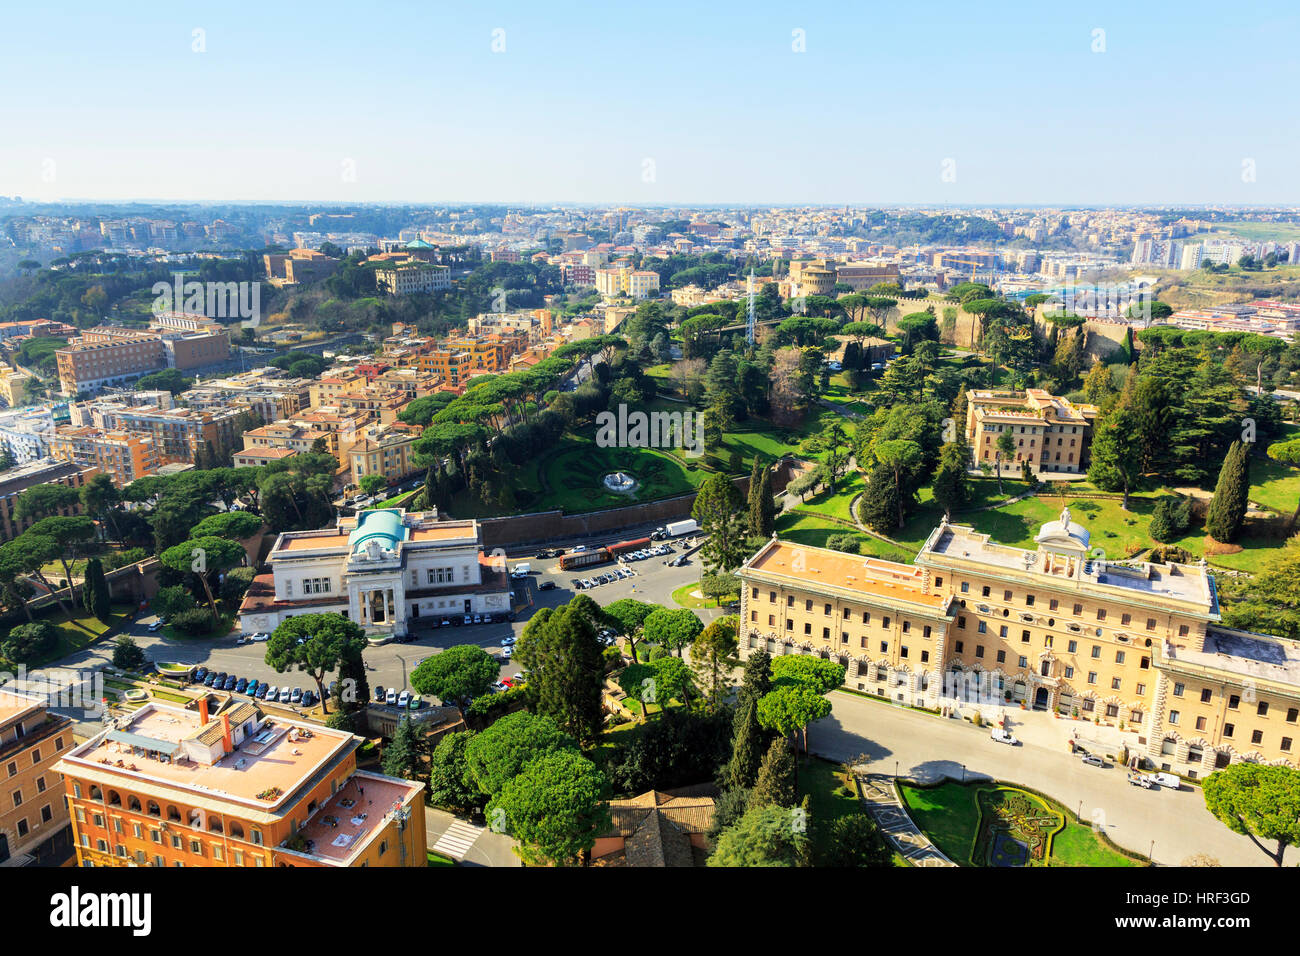 View over the Vatican garden with Stazione Ferroviaria Vaticano, Vatican railway station, the Palace of Justice - Stock Image